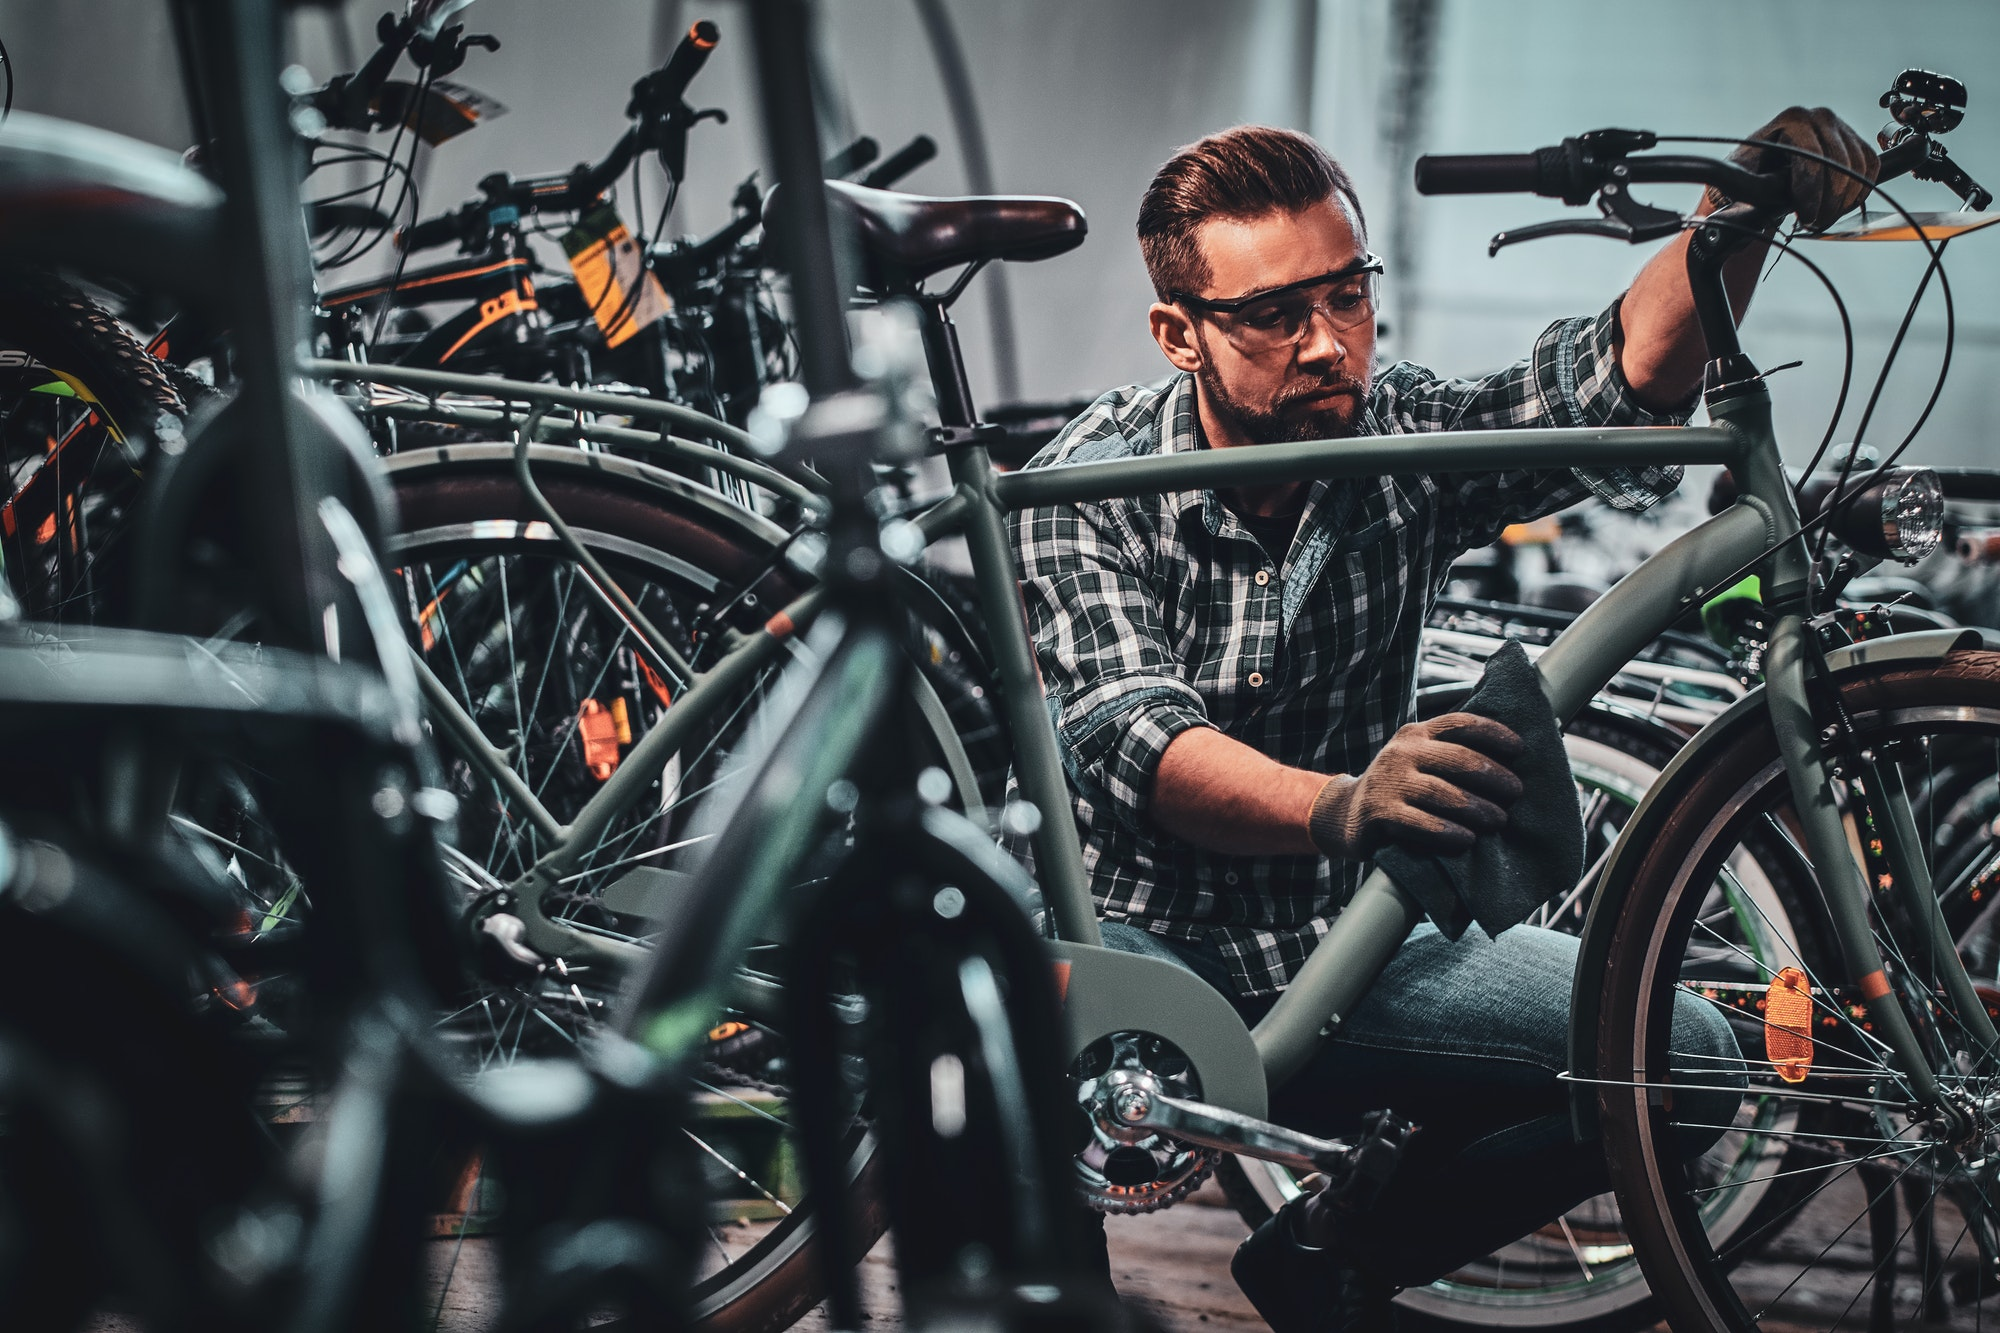 Busy attractive man in protective glasses is cleaning bicycle from dirt